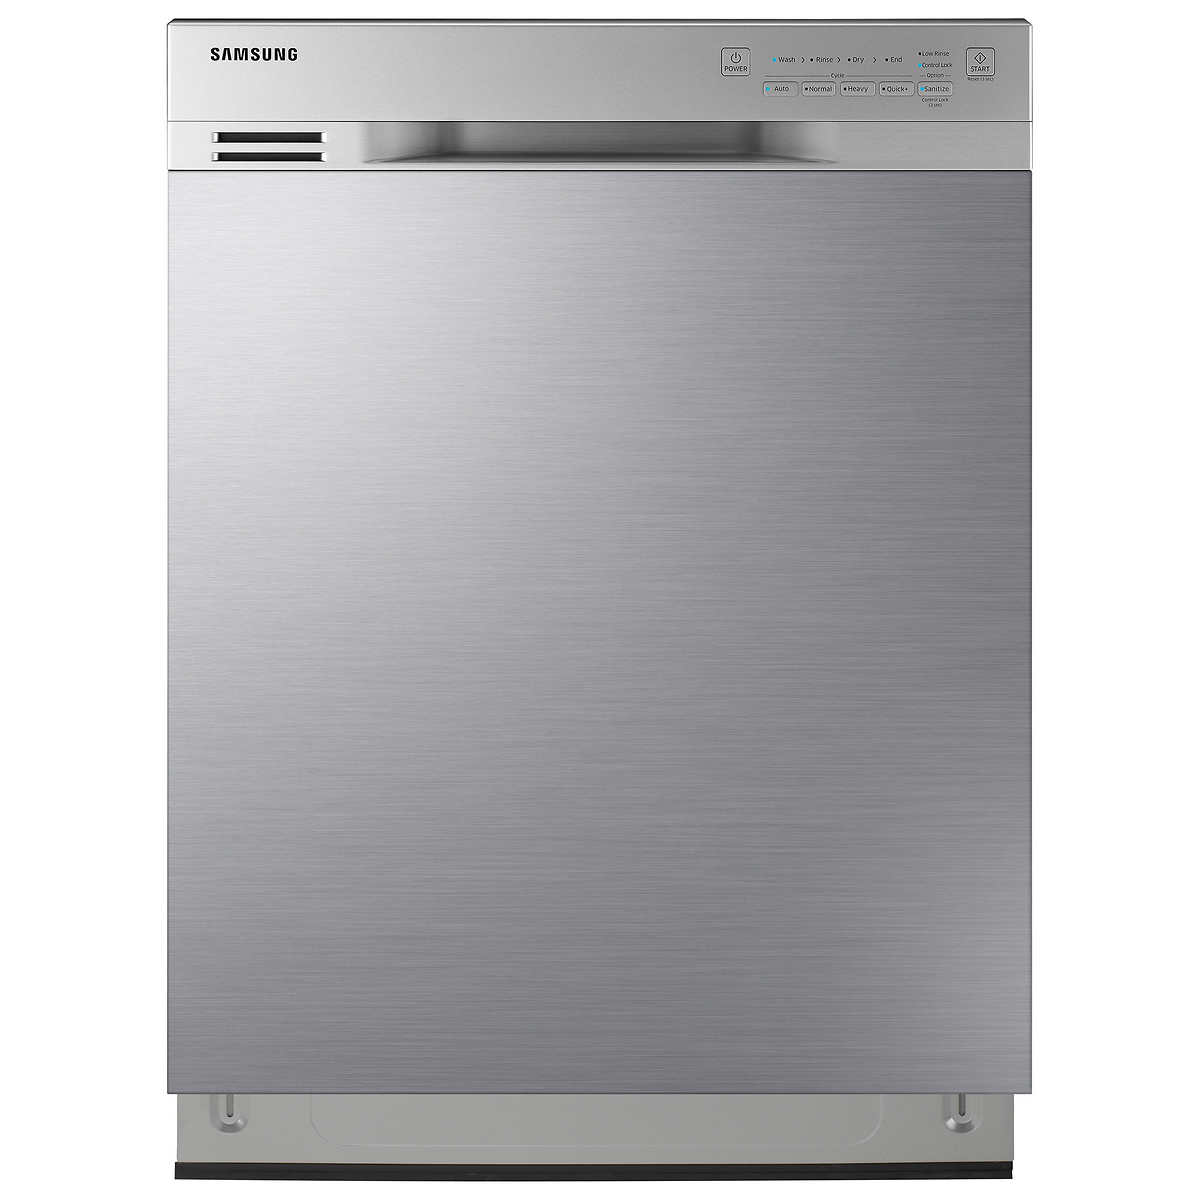 How To Clean The Inside Of A Stainless Steel Dishwasher Stainless Steel Dishwashers Costco